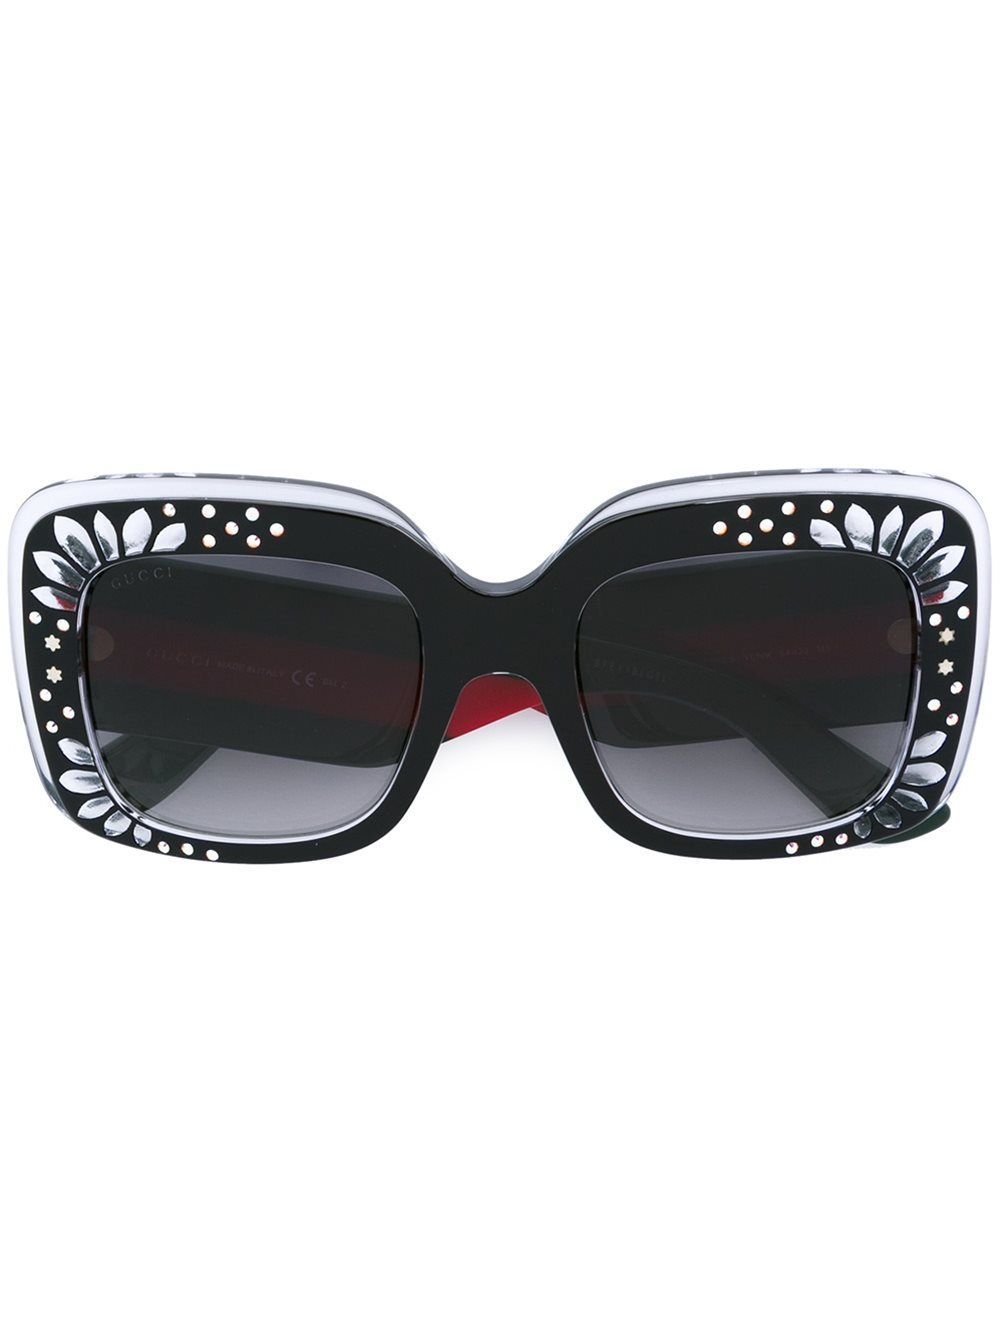 2fa00ee193 Gucci Eyewear Oversize Square-frame Rhinestone Sunglasses Black crystal red green  Women Accessories  11636733  -  101.26   Gucci Eyewear UK Sale Cheap Shop